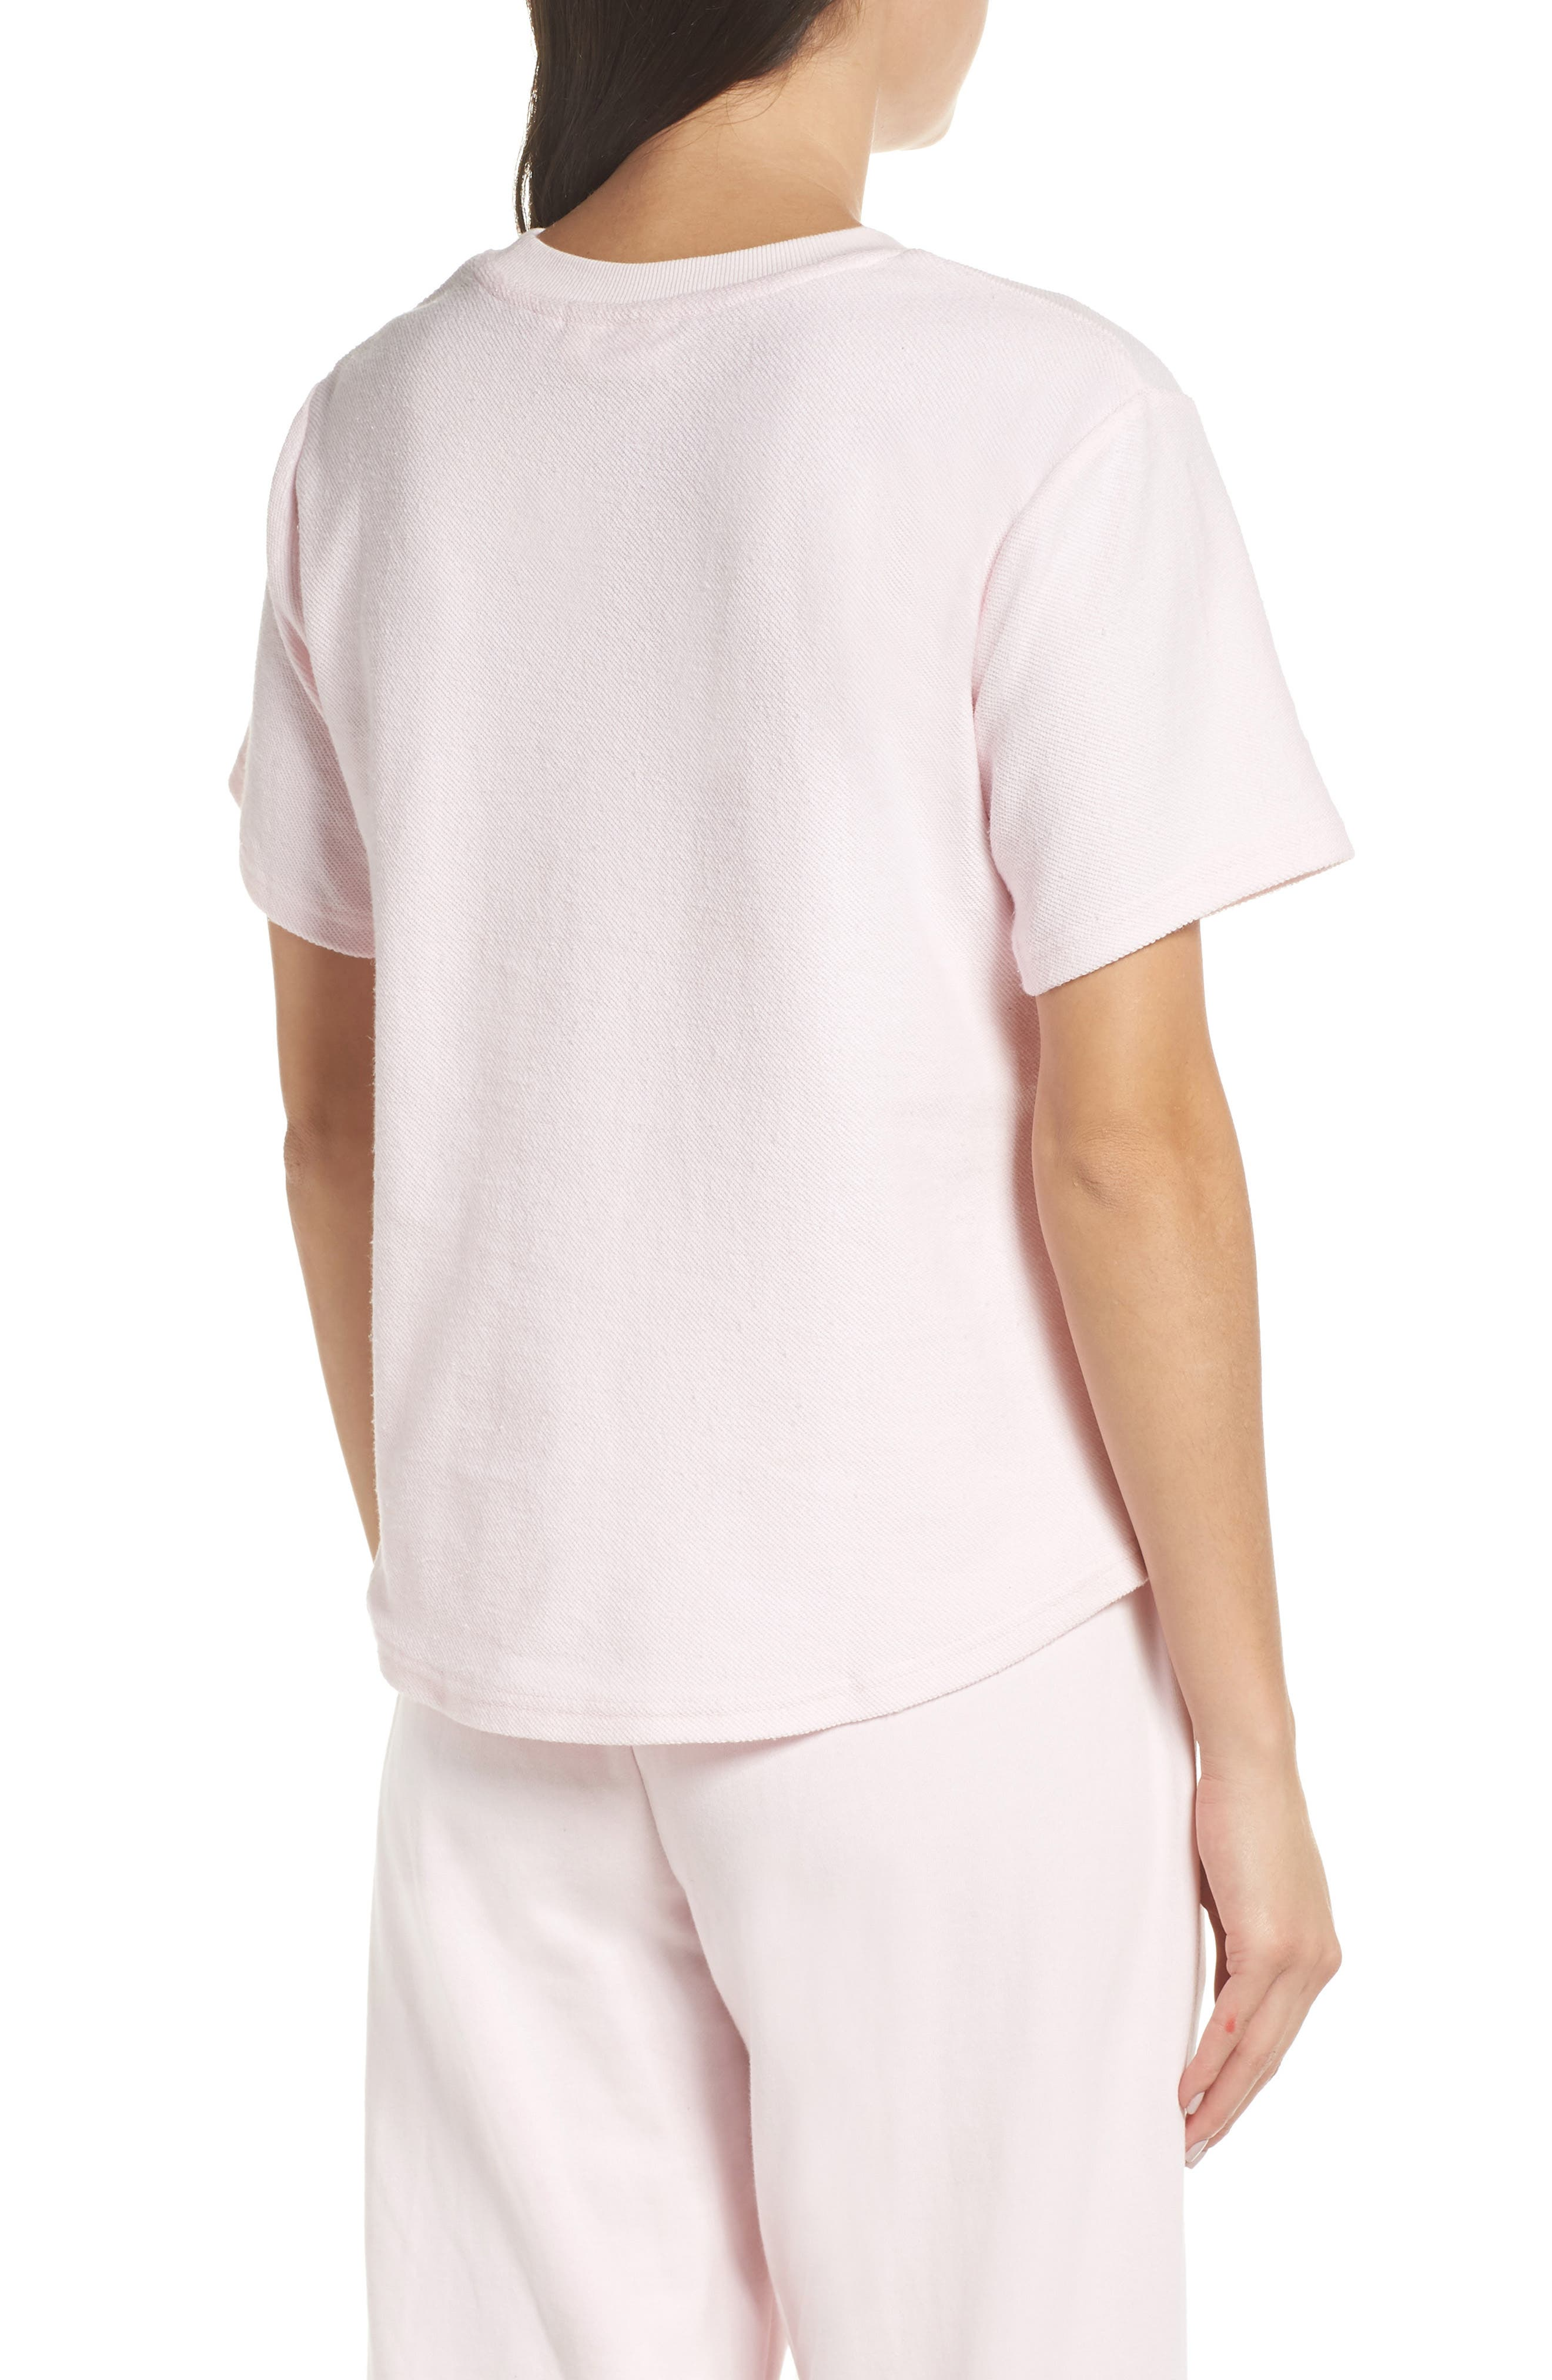 CHALMERS, Indy Tee, Alternate thumbnail 2, color, BLUSH PINK BABY TERRY